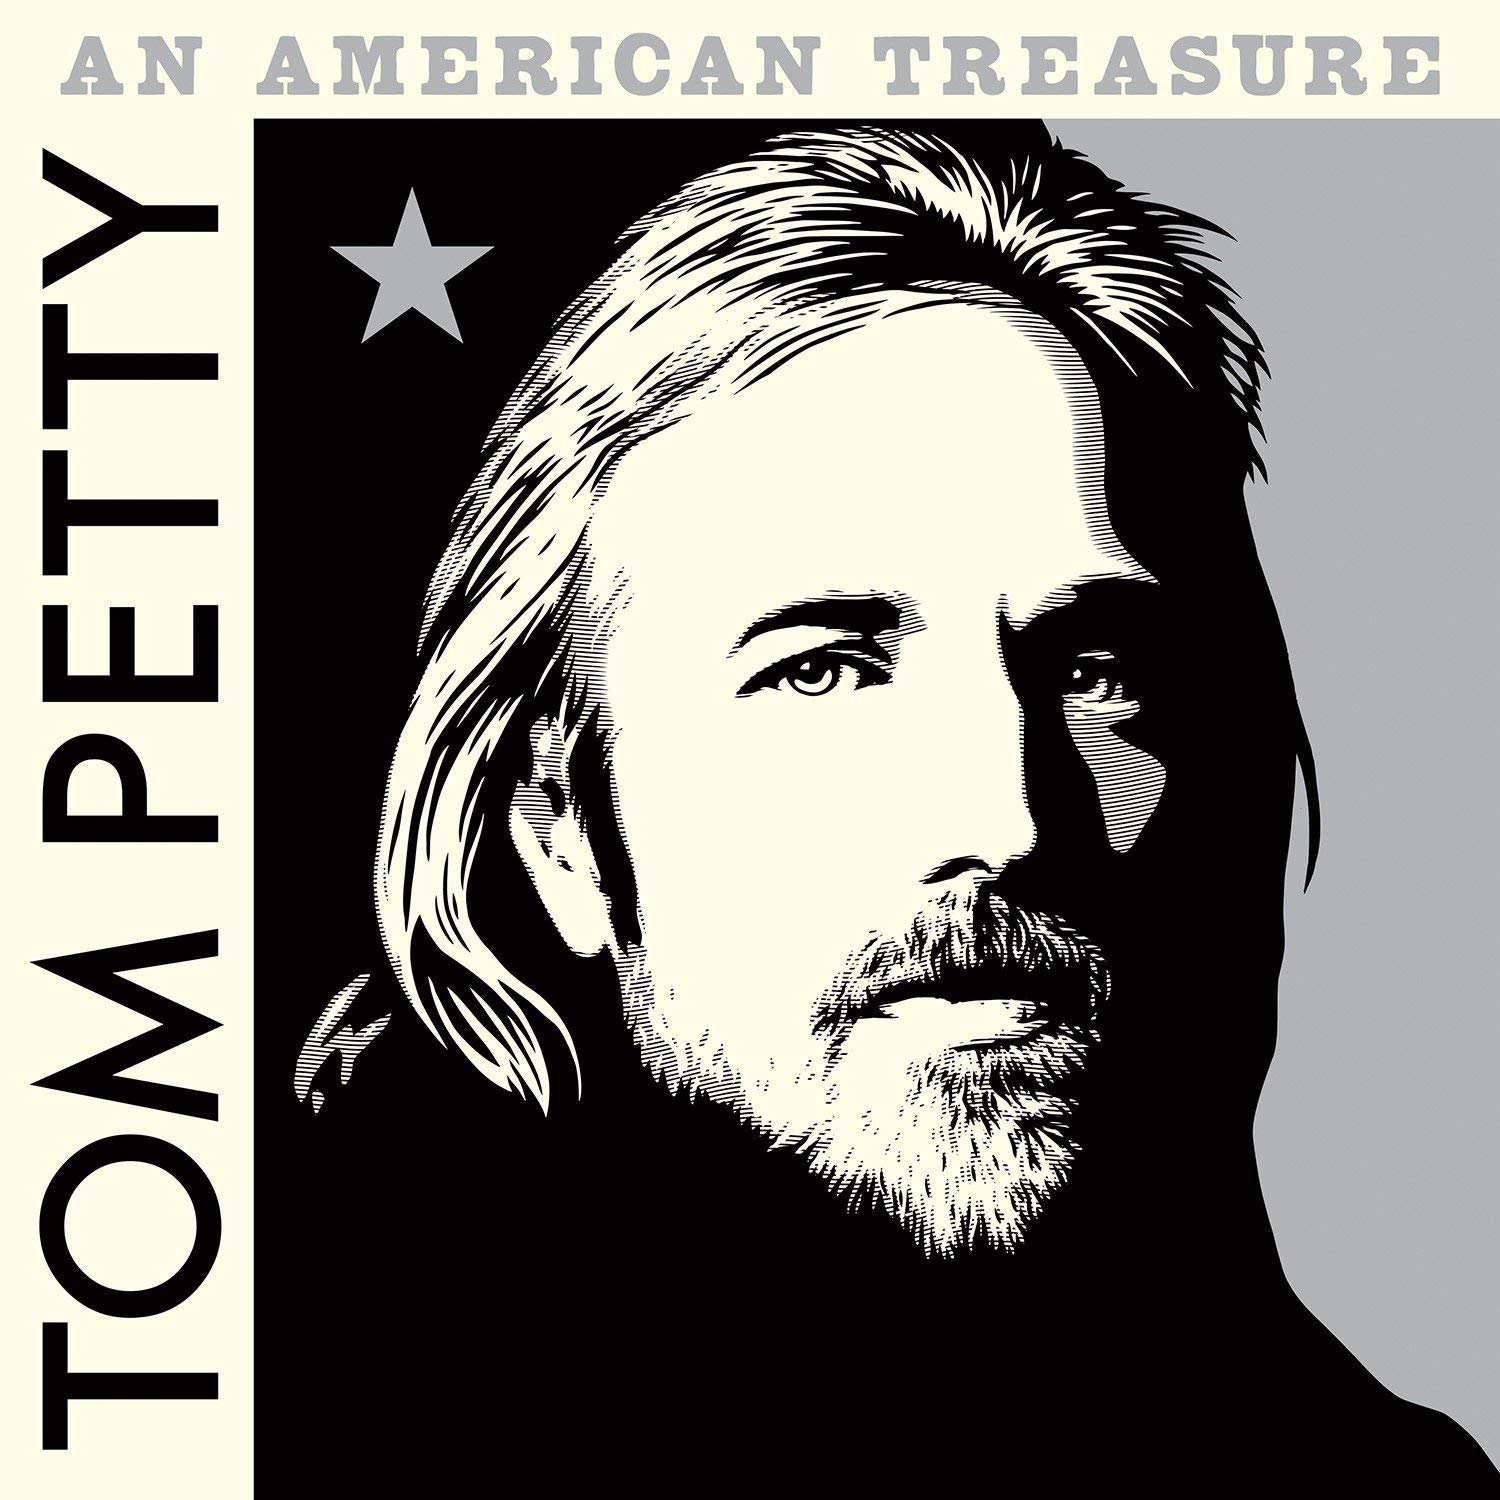 Tom Petty - An American Treasure [Deluxe 4CD Box Set]